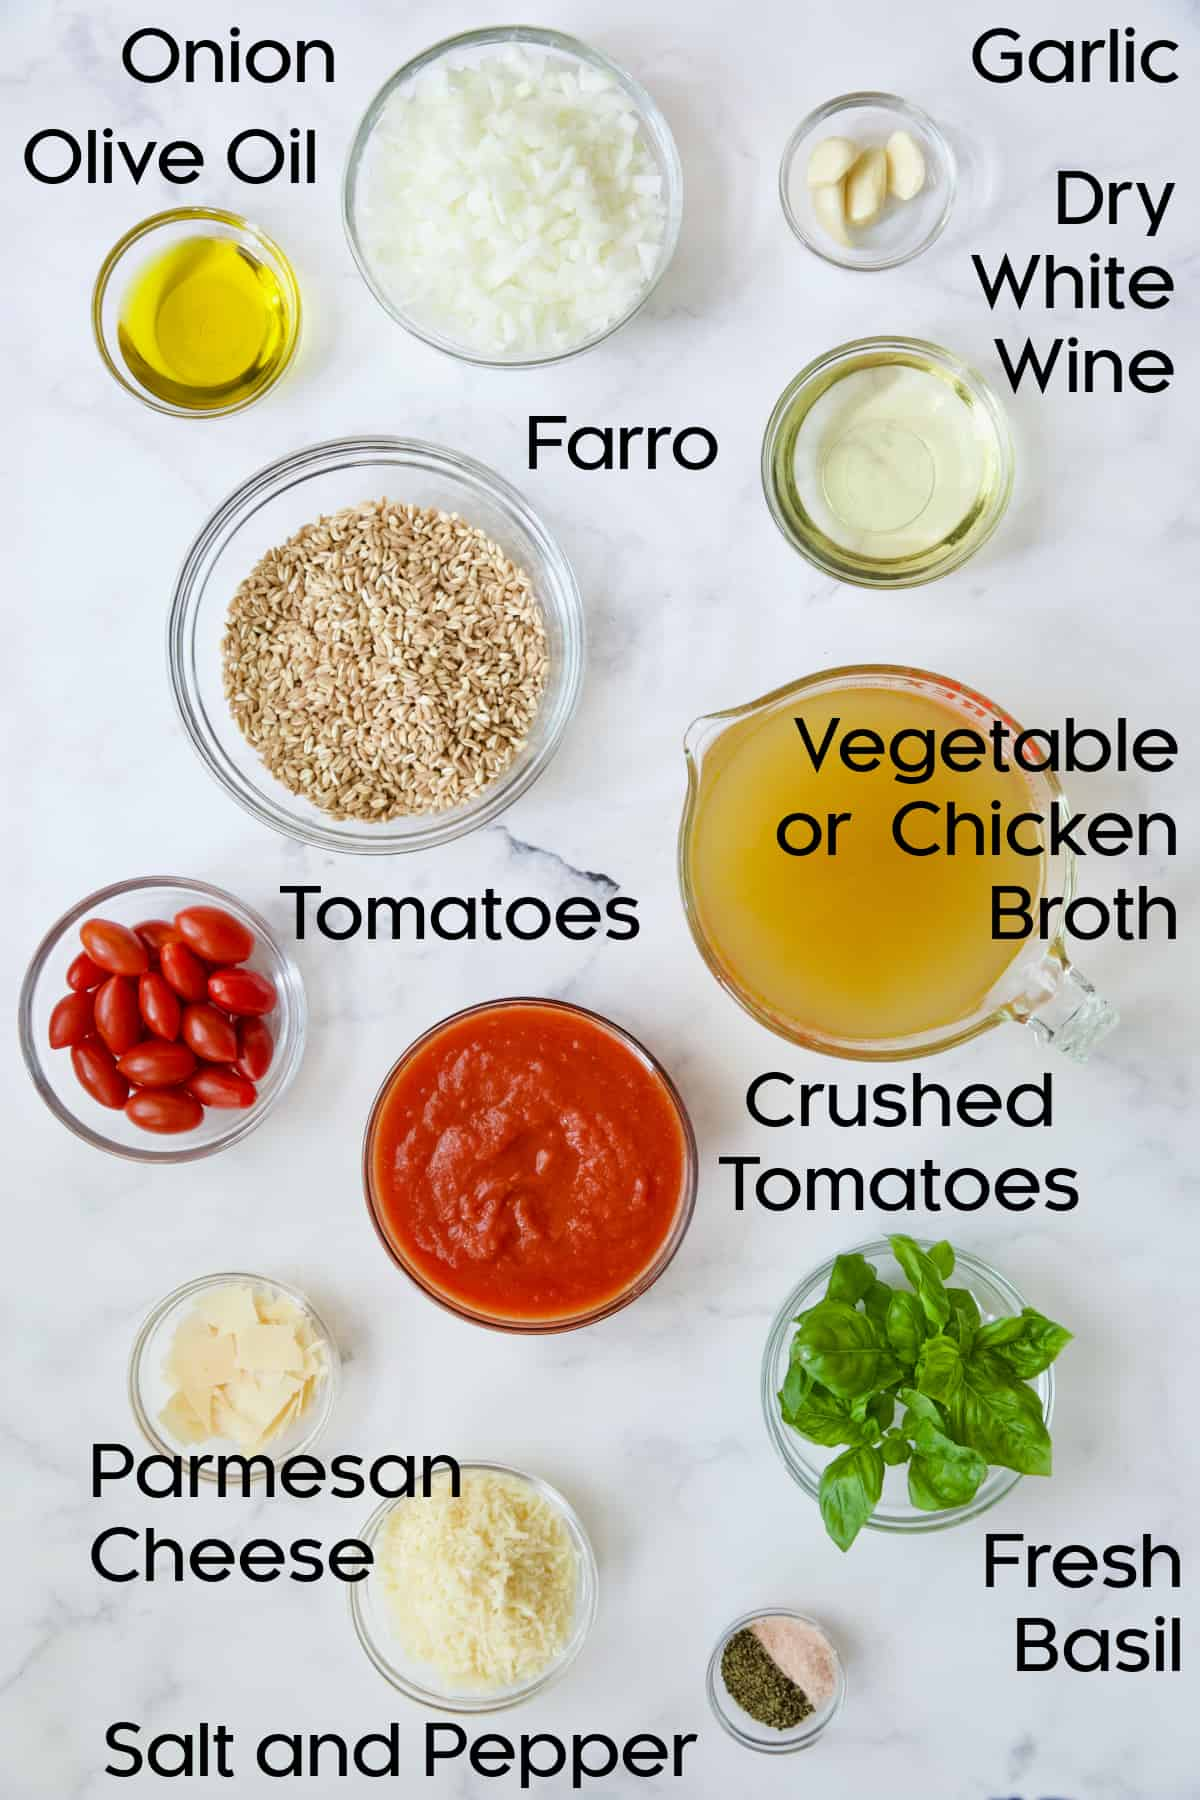 Ingredients for Tomato Farro Risotto with Basil and Parmesan in glass bowls.